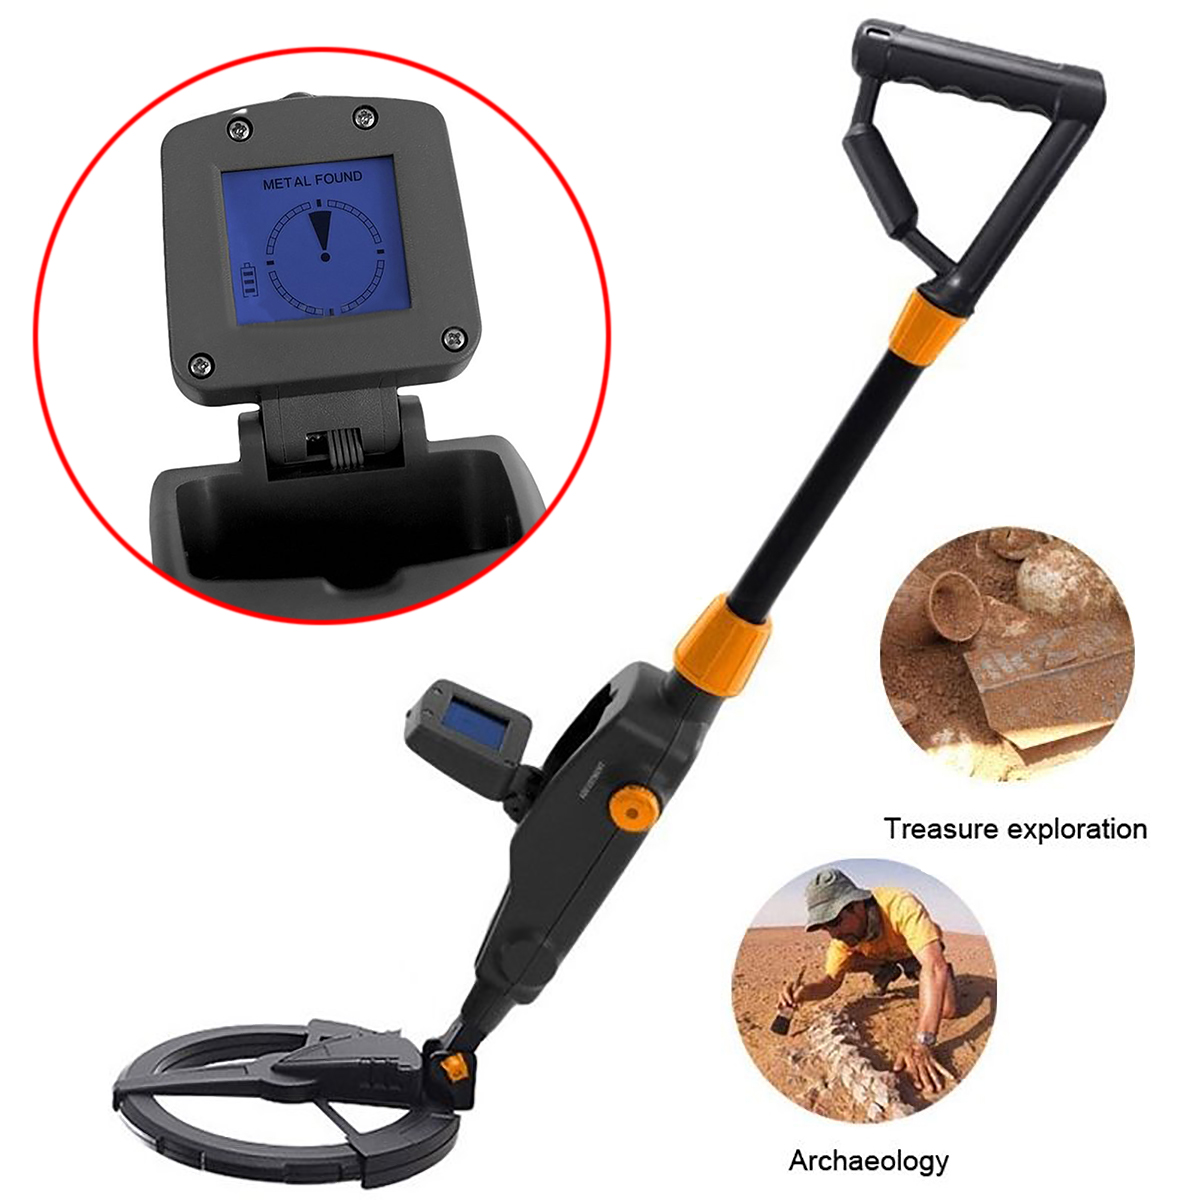 MD-1008A LCD Metal Detector Beach Search Machine Underground Gold Digger Mayitr Industrial Metal Detectors for Metal Detection professional deep search metal detector goldfinder underground gold high sensitivity and lcd display metal detector finder